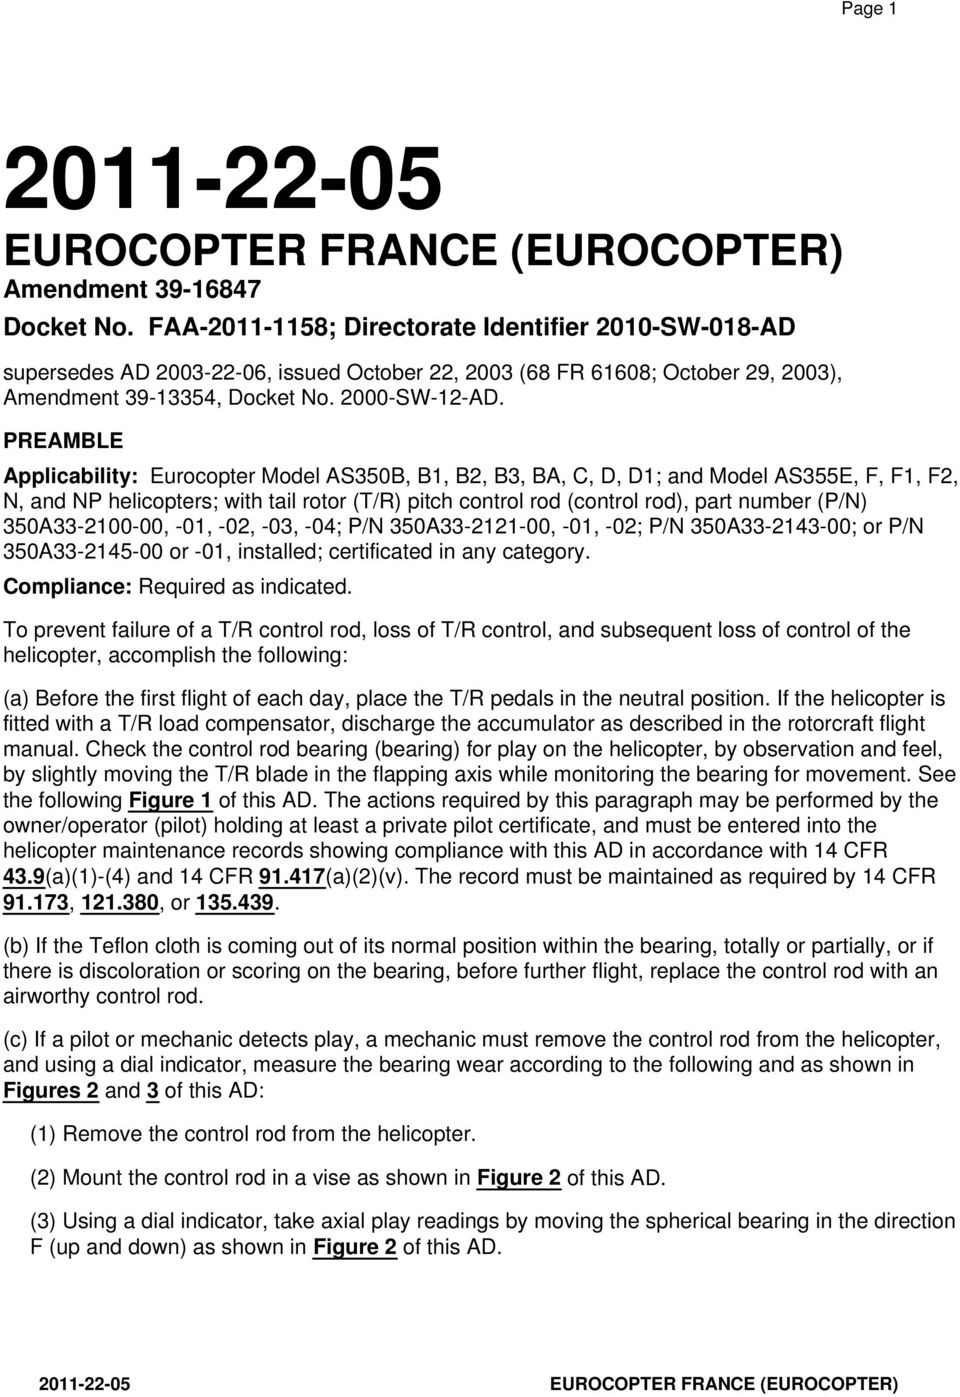 PREAMBLE Applicability: Eurocopter Model AS350B, B1, B2, B3, BA, C, D, D1; and Model AS355E, F, F1, F2, N, and NP helicopters; with tail rotor (T/R) pitch control rod (control rod), part number (P/N)